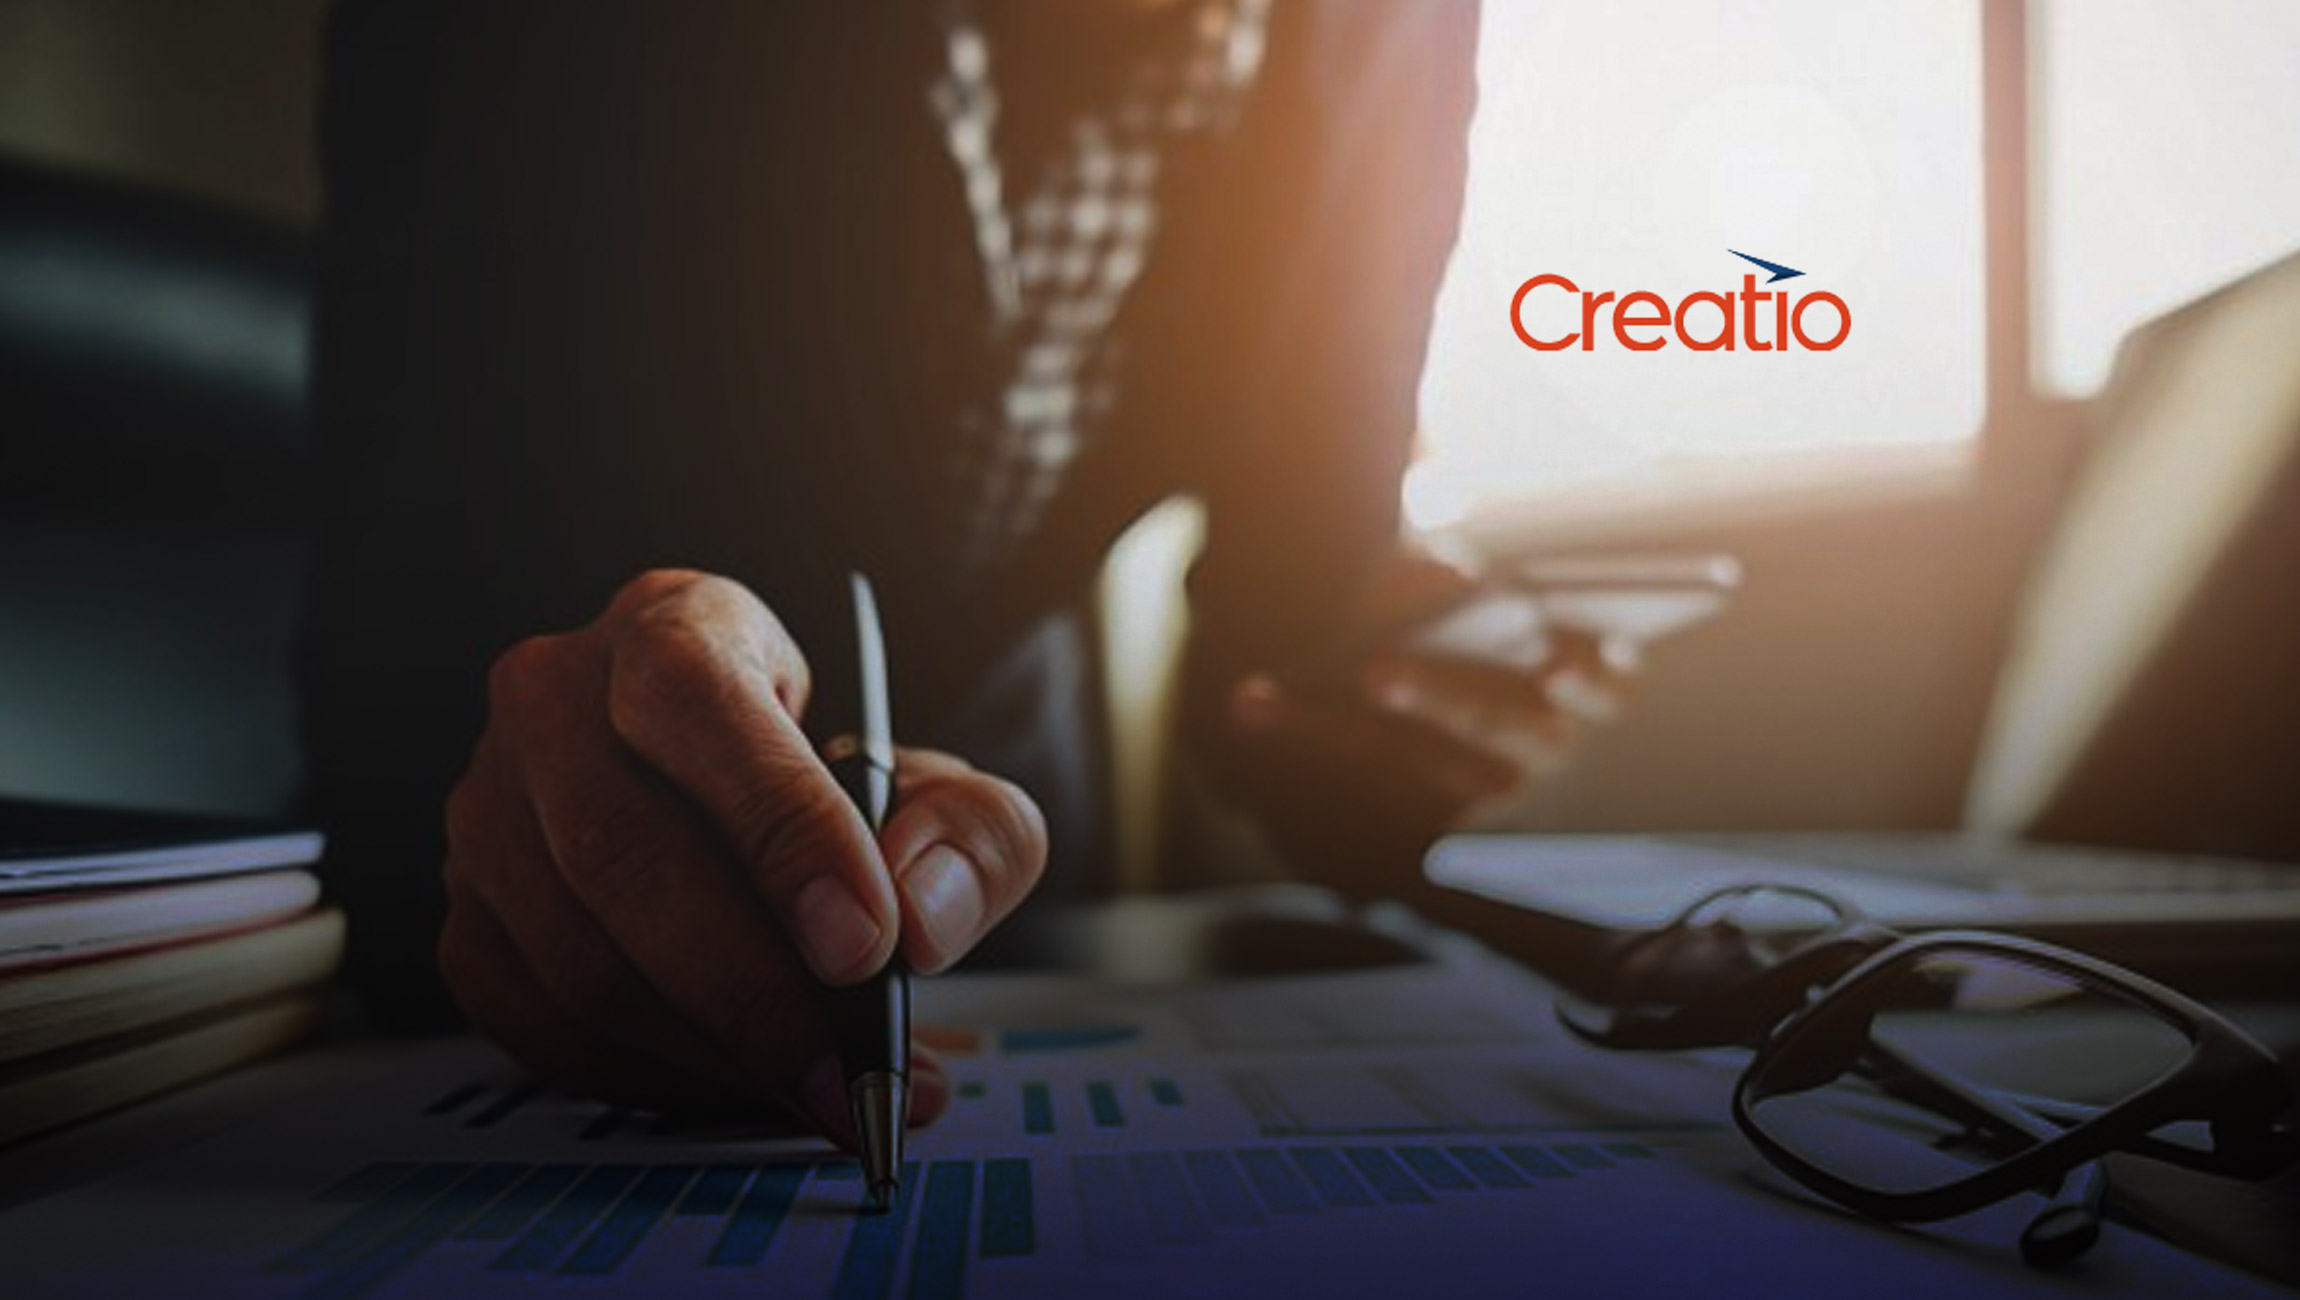 Creatio Named Market Leader Among Business Process Management (BPM) Software According to the Winter 2021 Customer Success Report